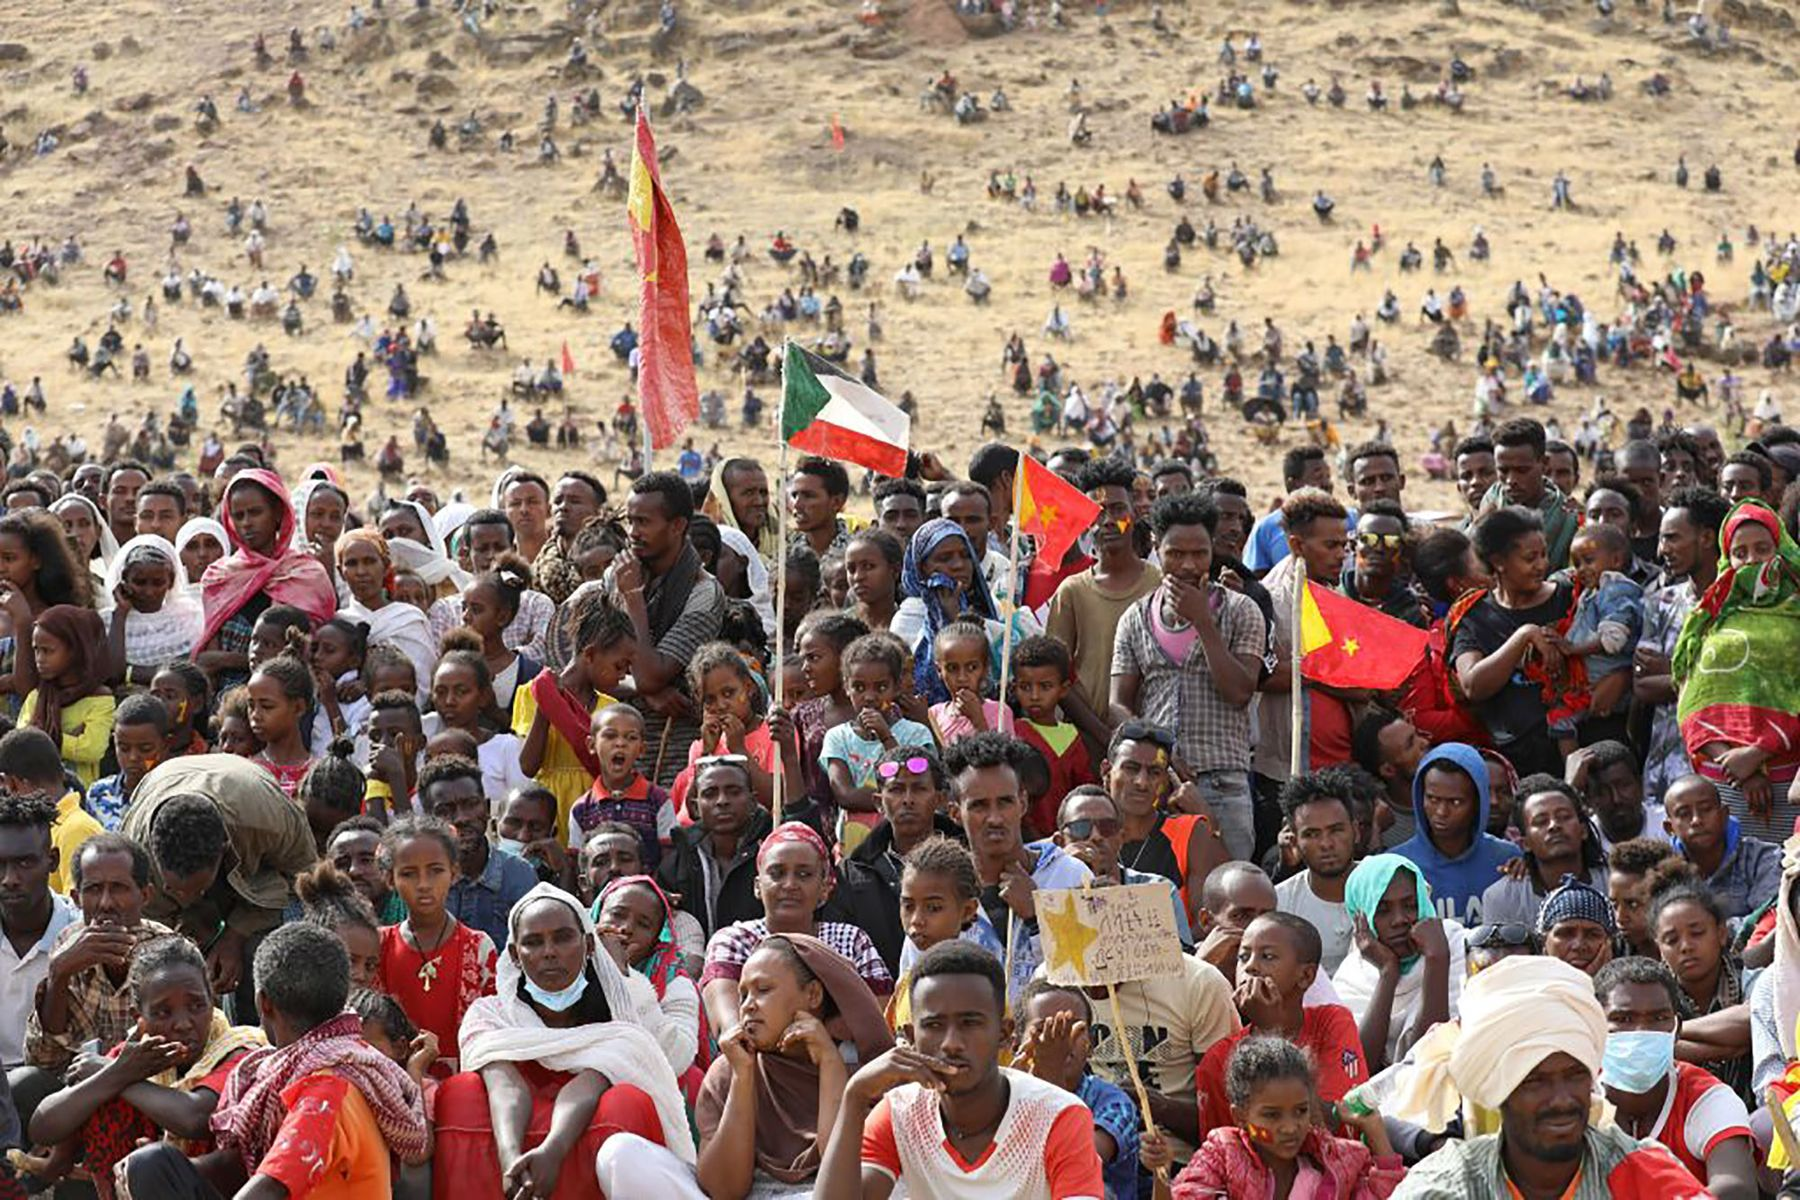 Ethiopian refugees celebrate the 46th anniversary of the Tigray People's Liberation Front at Um Raquba refugee camp, Sudan, on Feb.19.